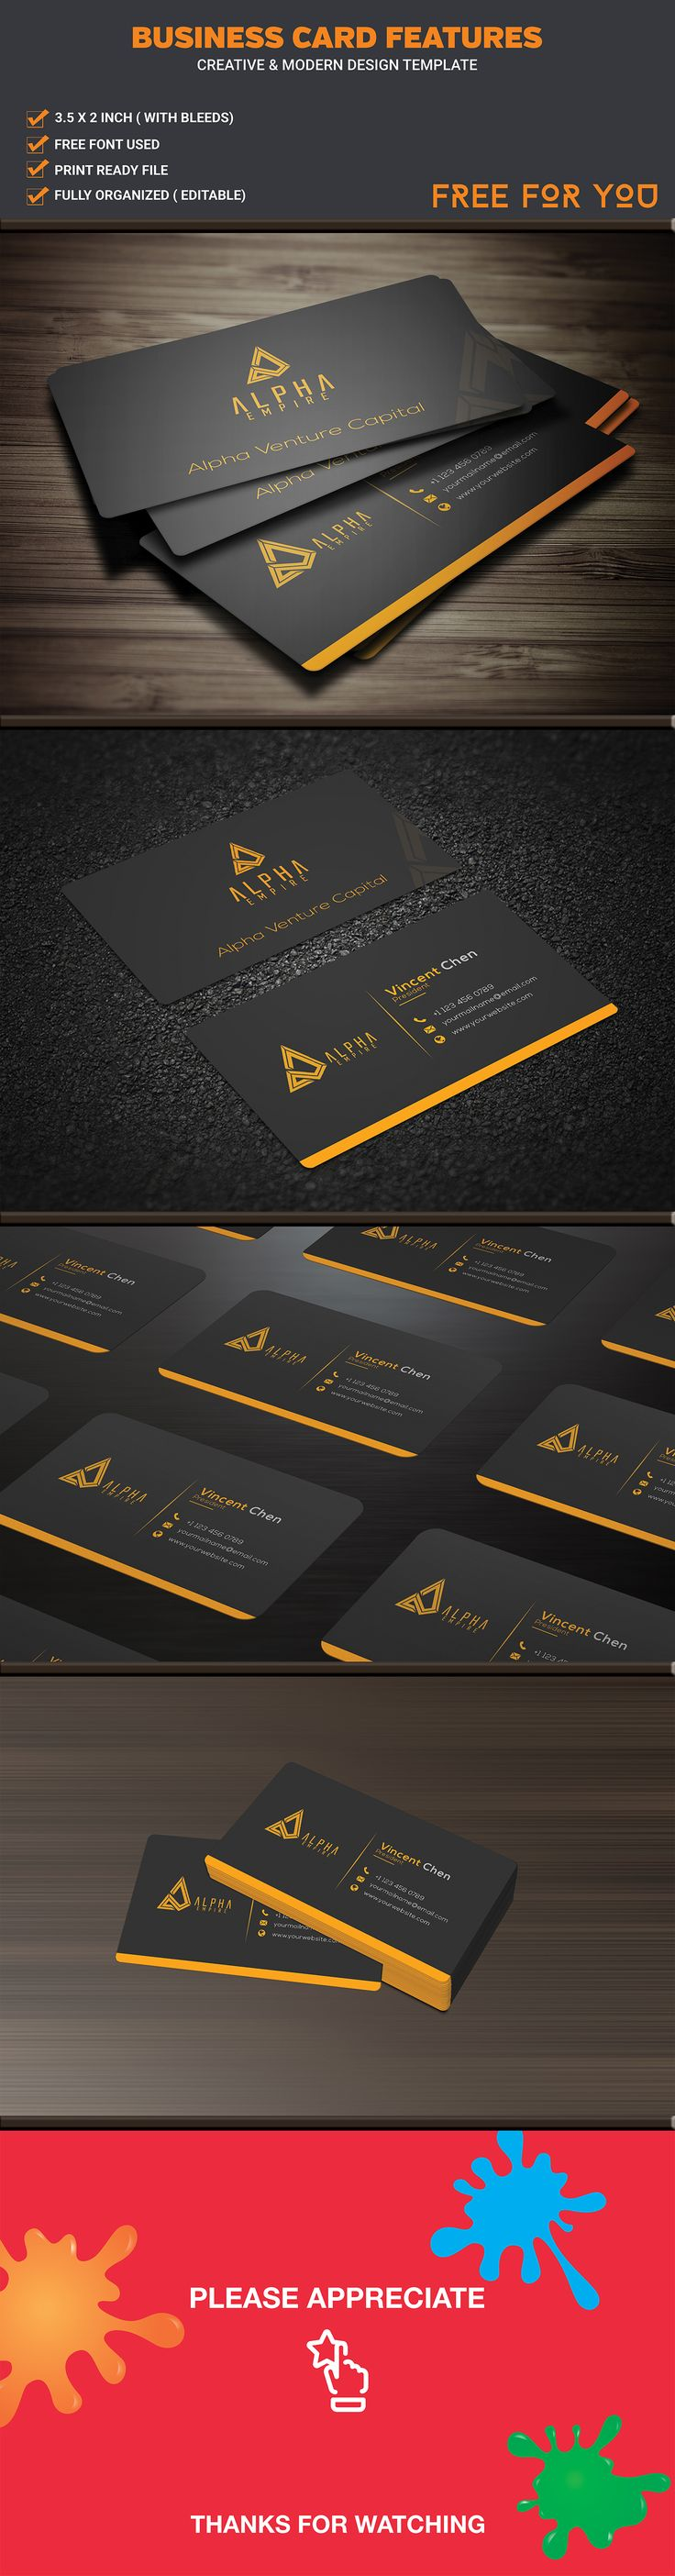 best 25 free business cards ideas on pinterest